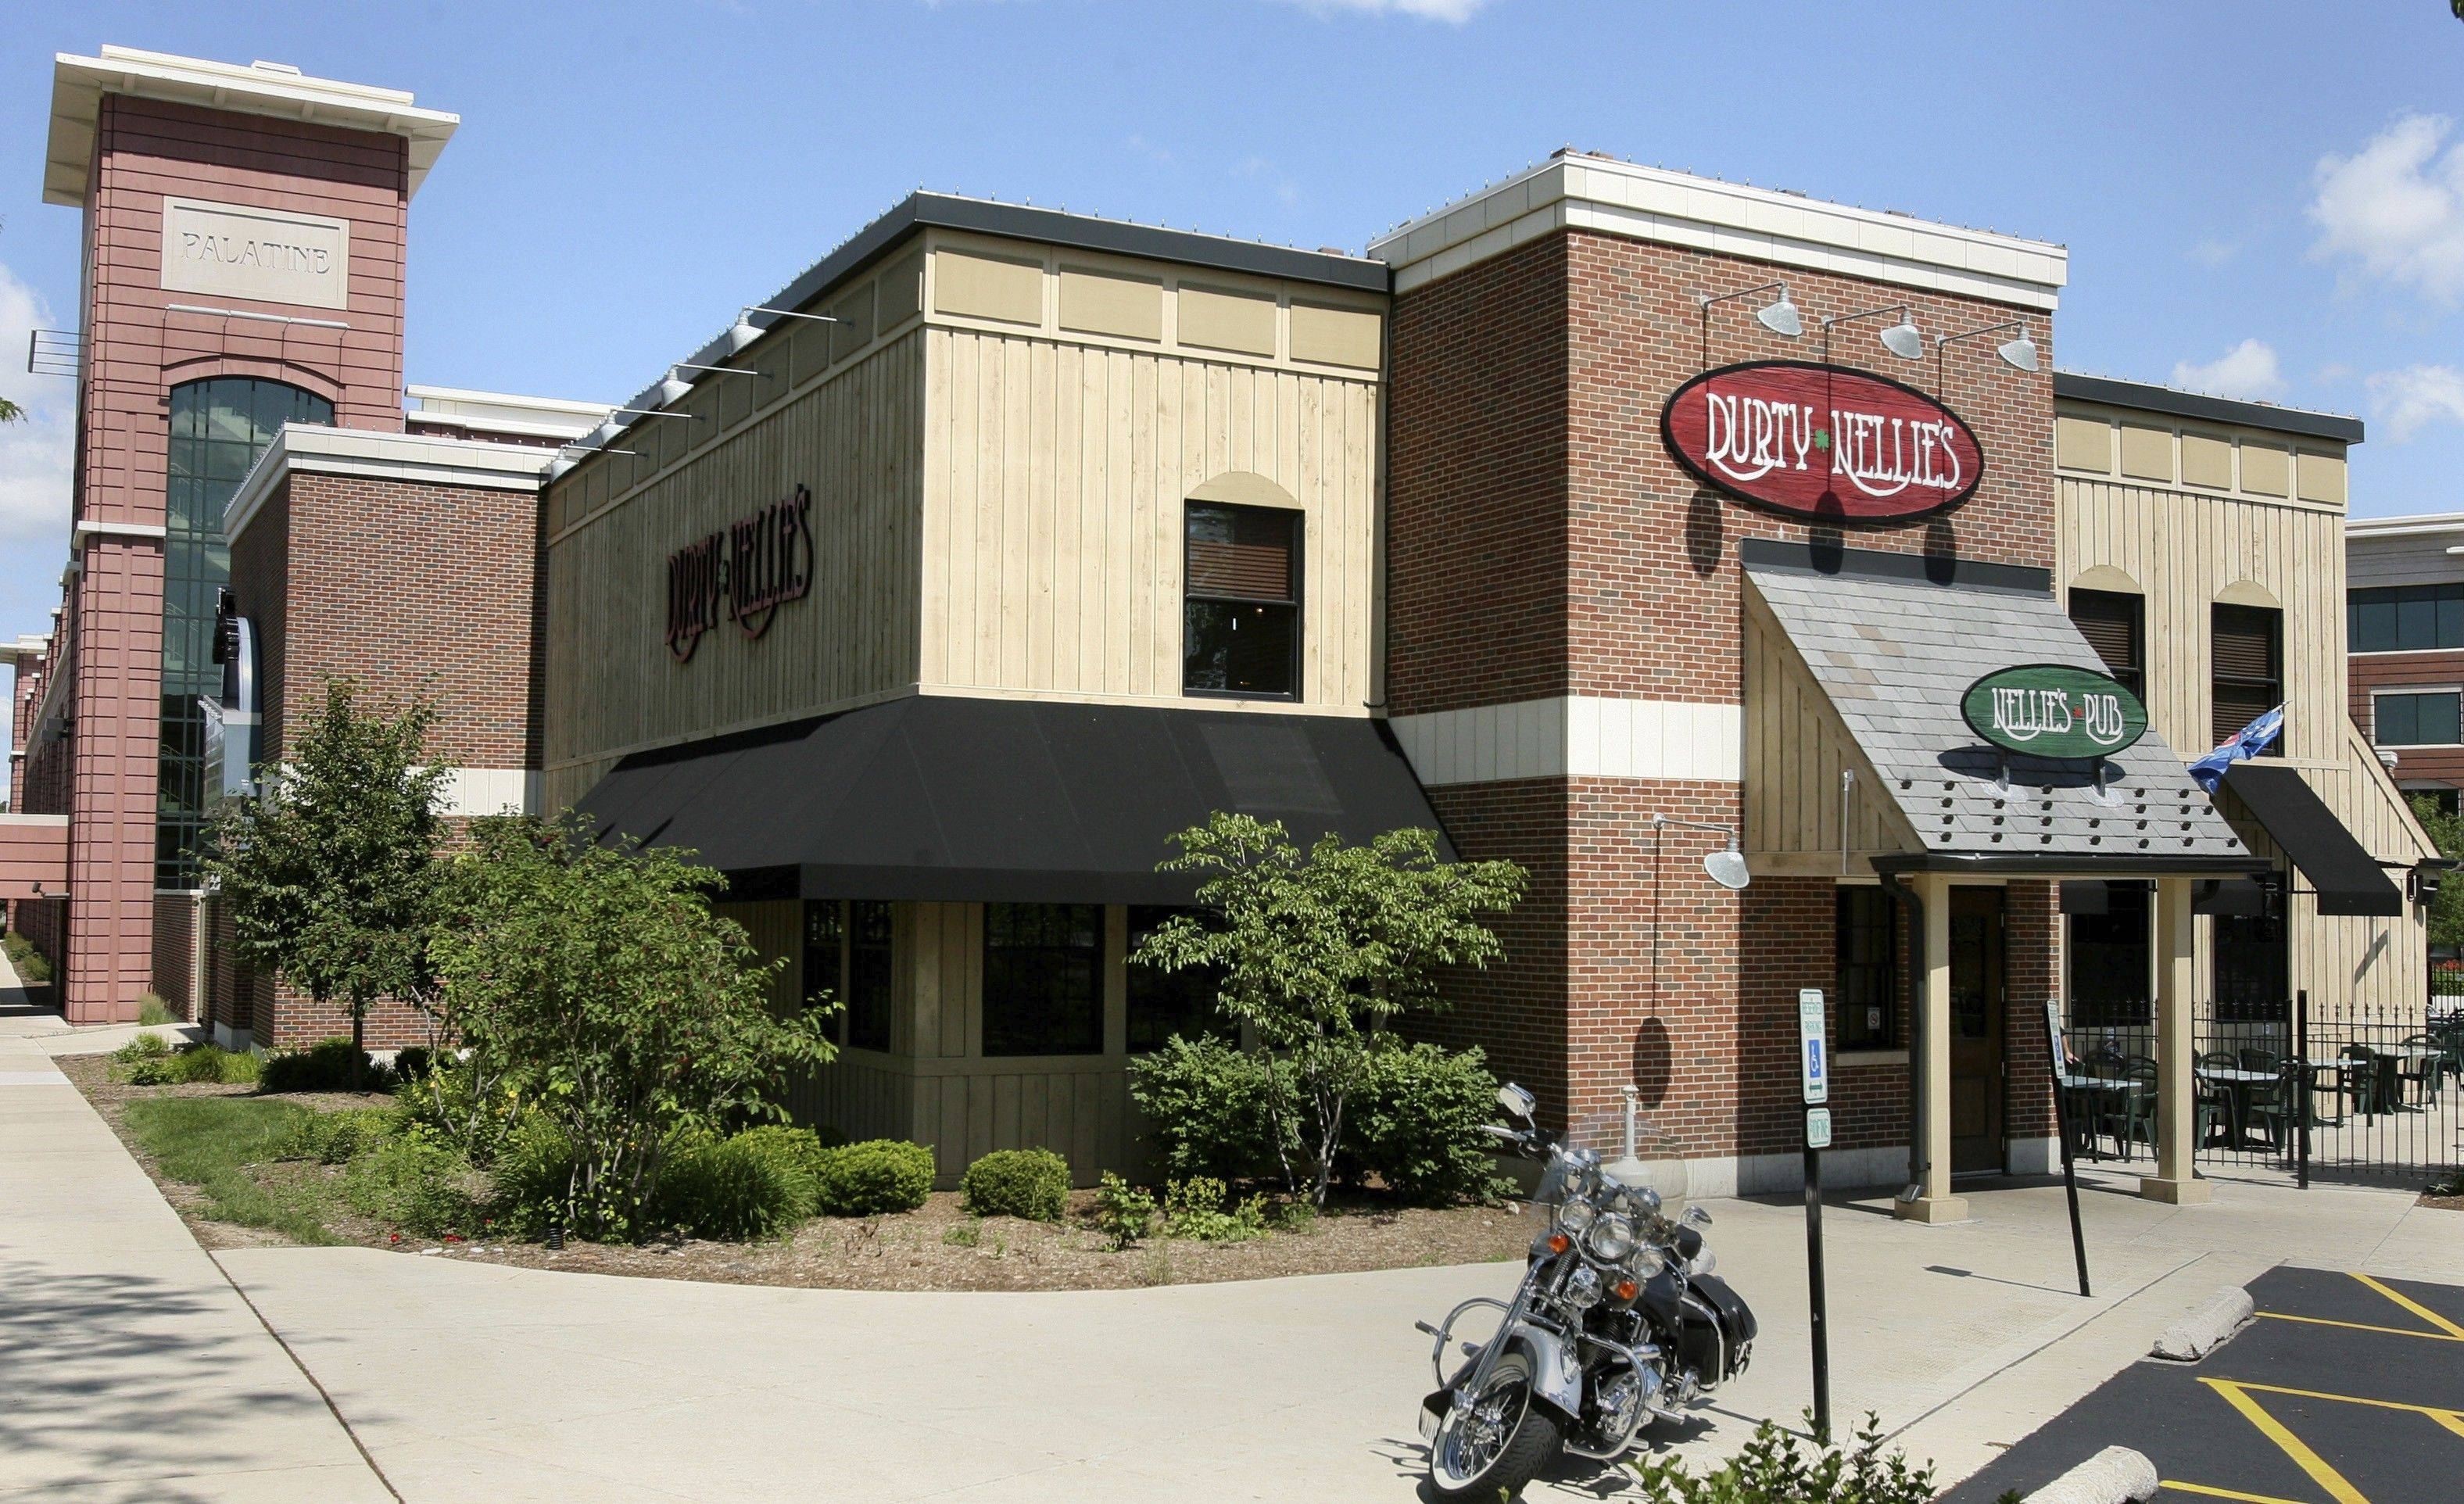 Durty Nellie's in downtown Palatine plans to expand into a neighboring vacant space to offer banquets and additional restaurant and bar seating.